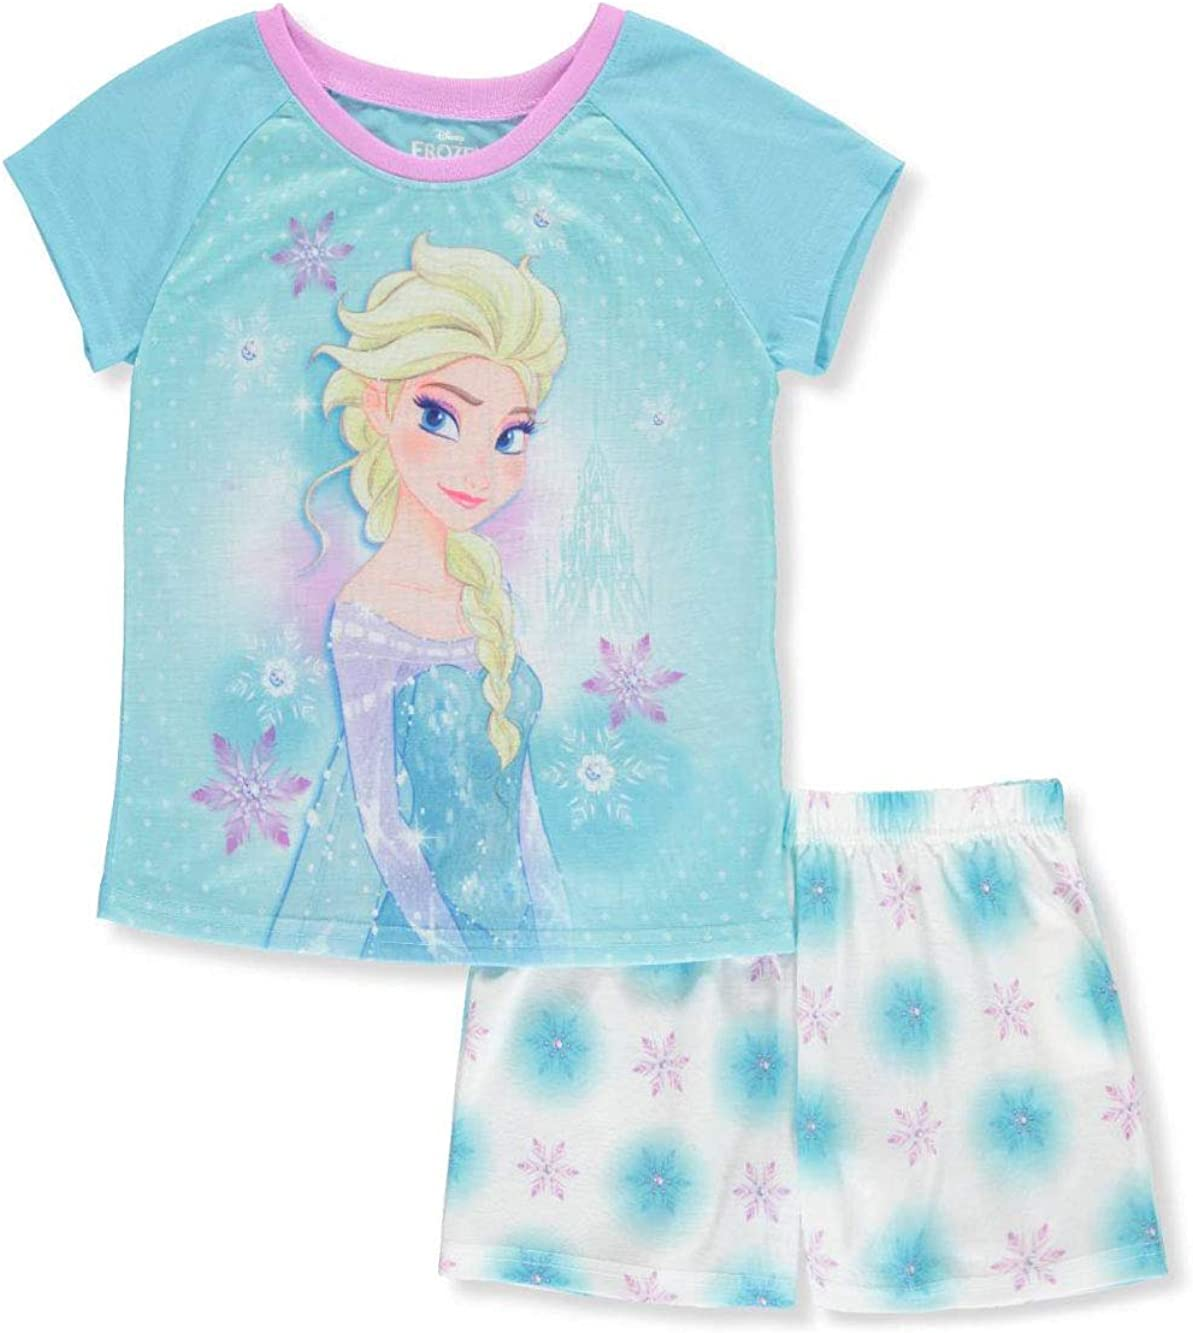 4//5 Disney Frozen Girls 2 Piece Pajama Short Set